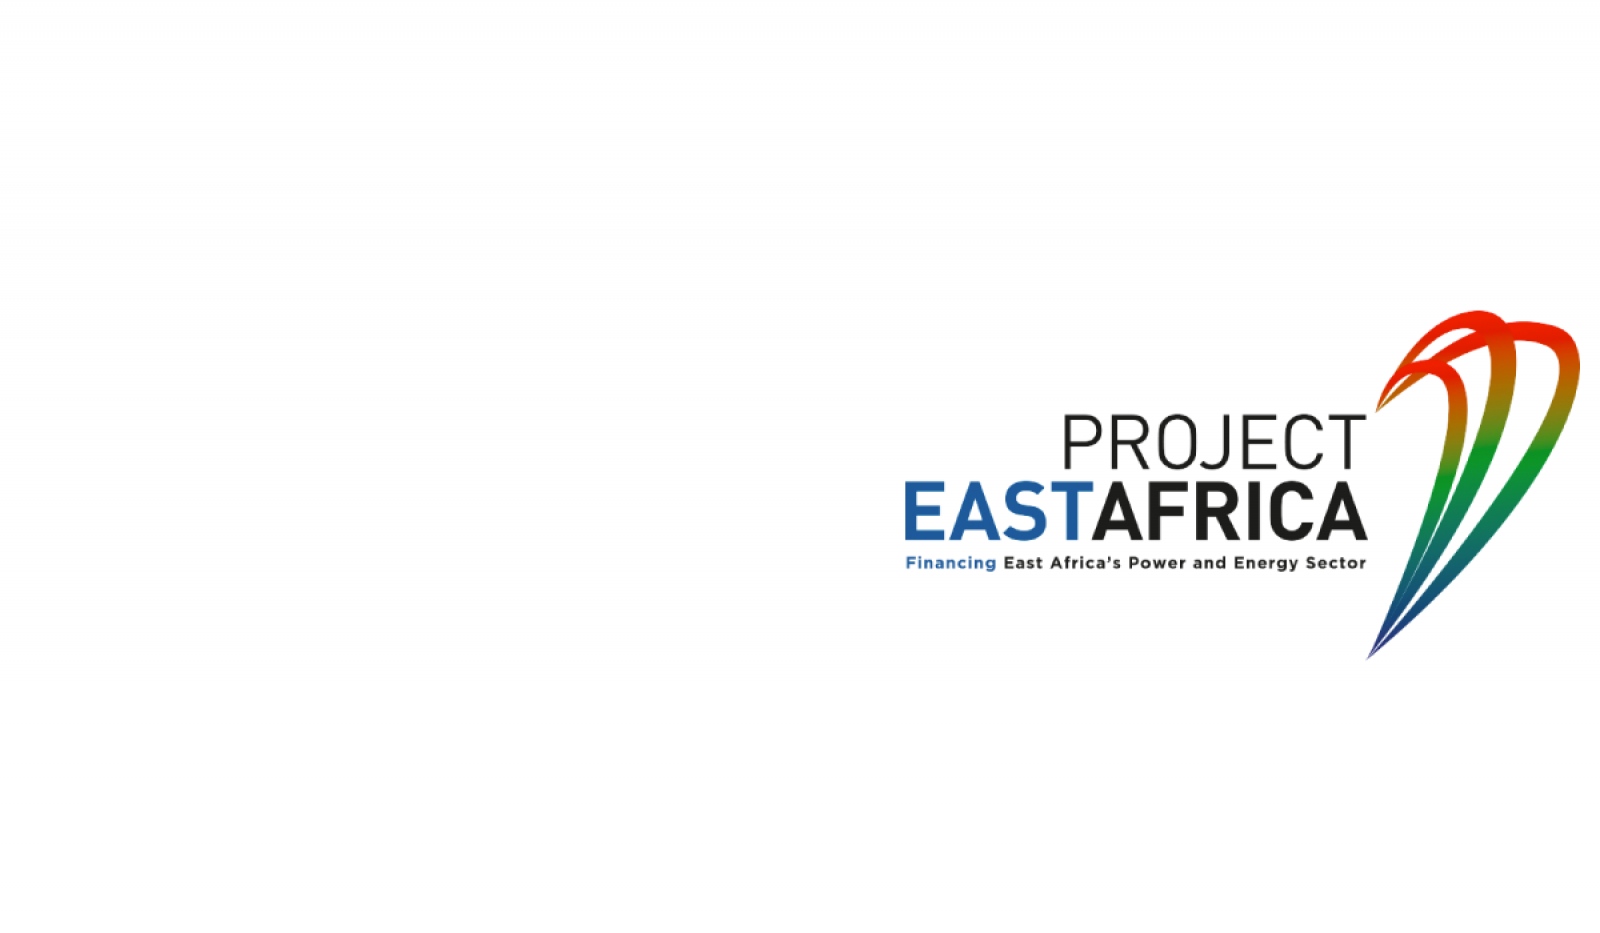 Global support grows across the financial and energy sectors for Project  East Africa 2019 0605d10947e7